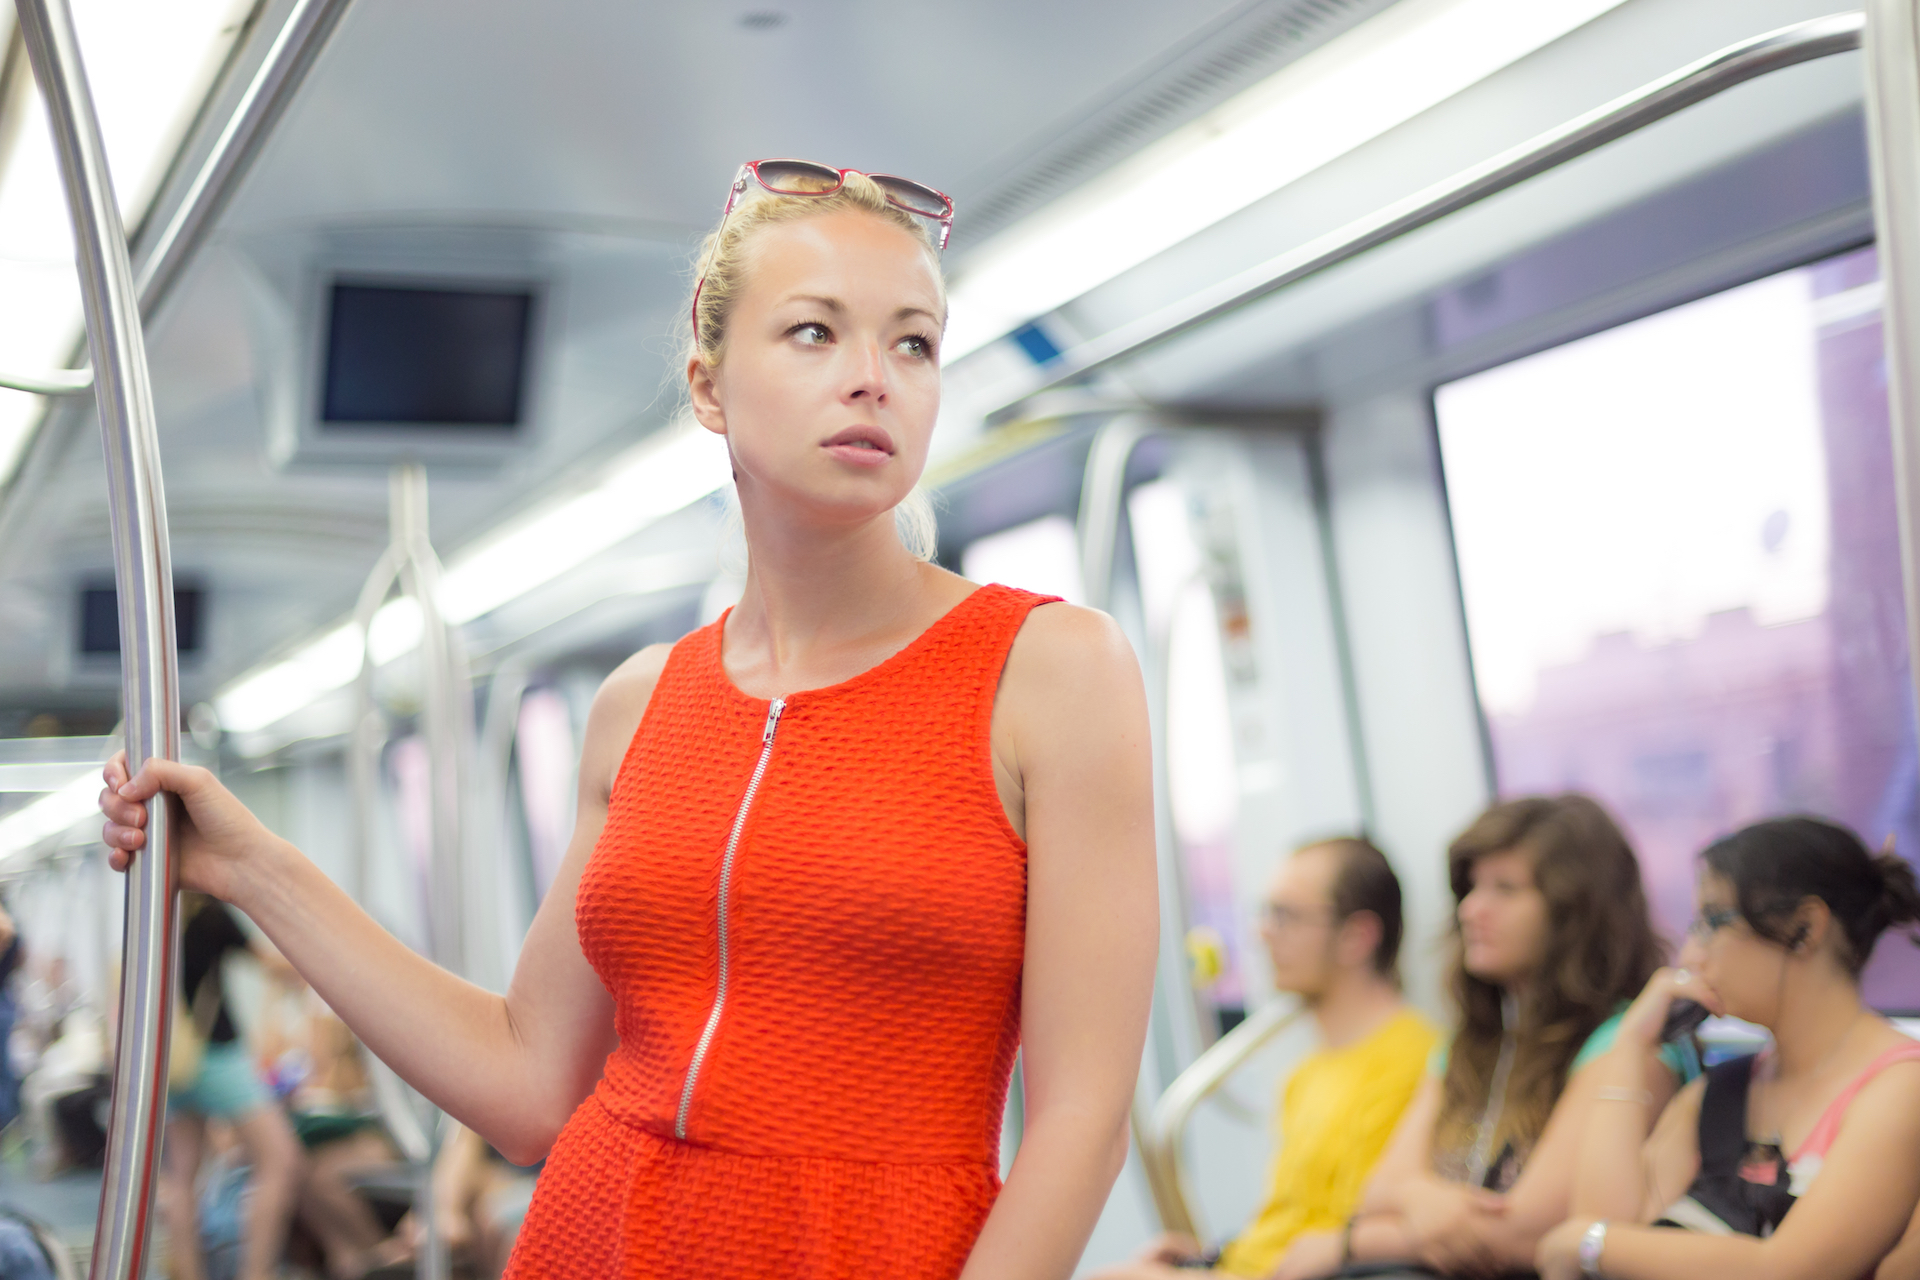 Researchers at the University of Toronto have determined that noise encountered on public transportation can be harmful to your health.